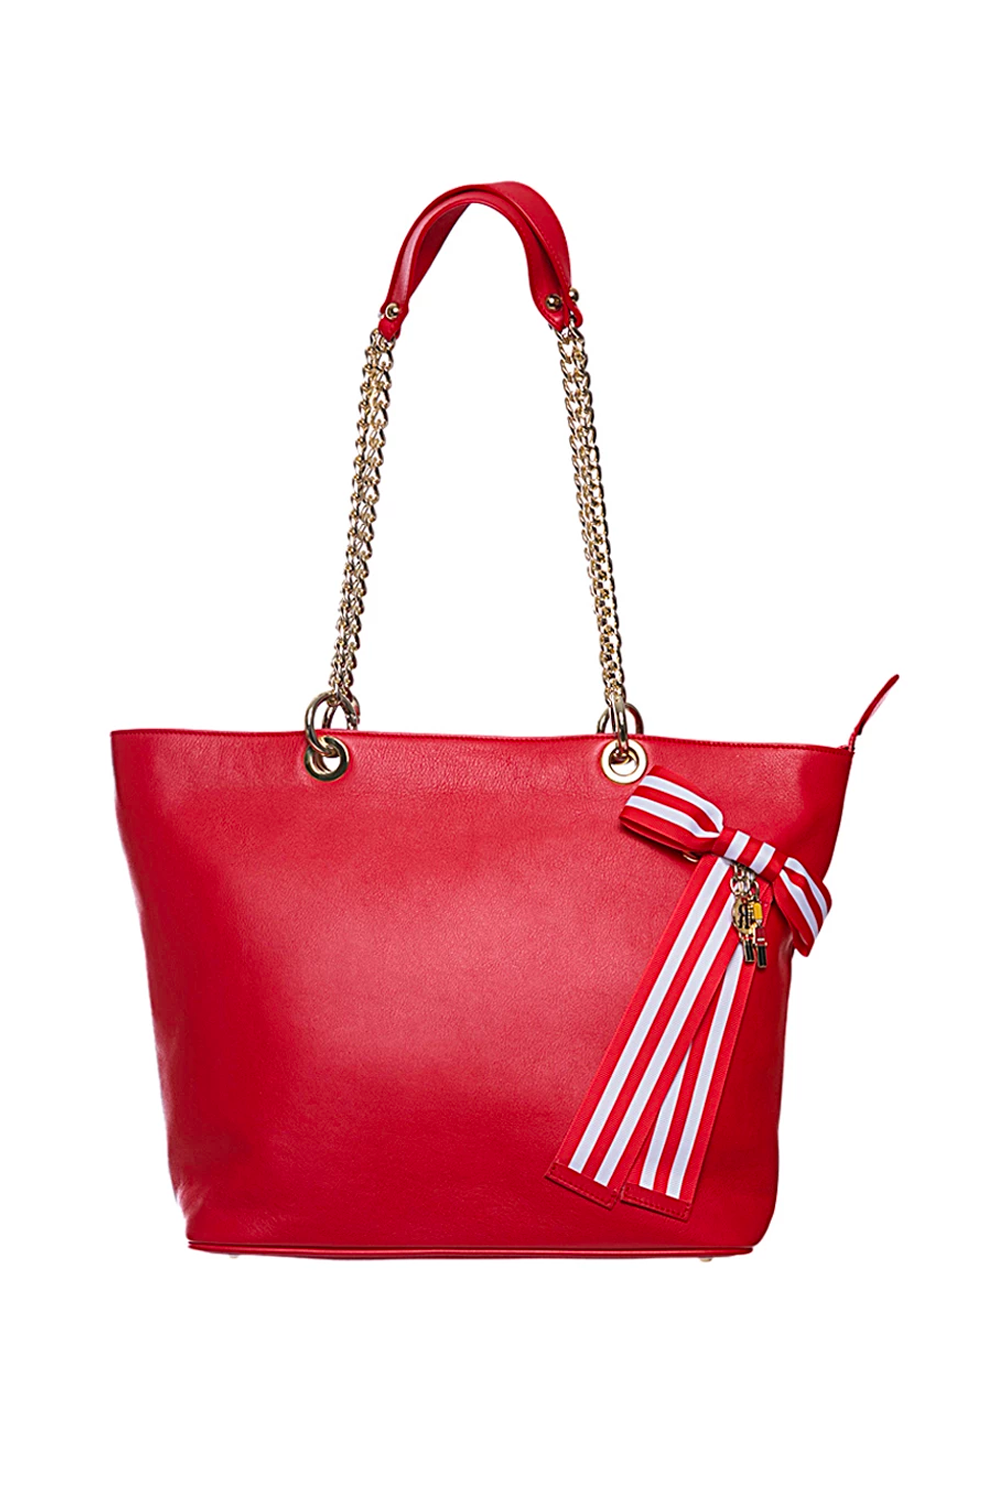 Red Leather Tote Bag with Chain Straps